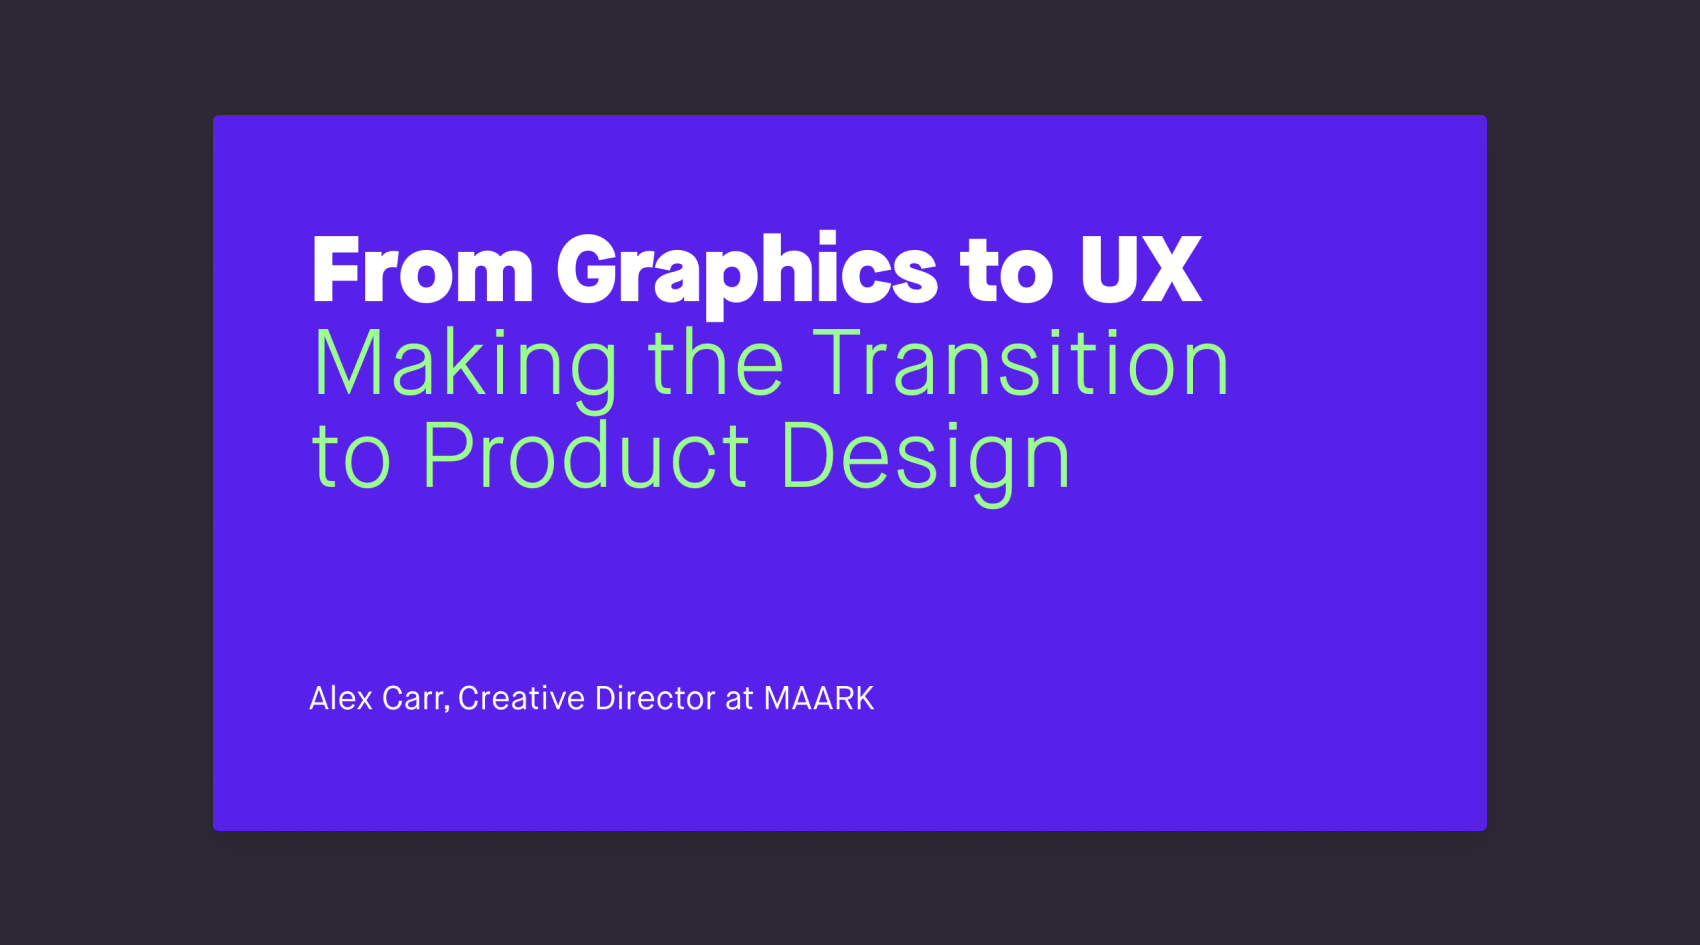 The cover slide for the talk with text that reads 'From Graphics to UX, Making the Transition to Product Design. Alex Carr, Creative Director at Maark.'